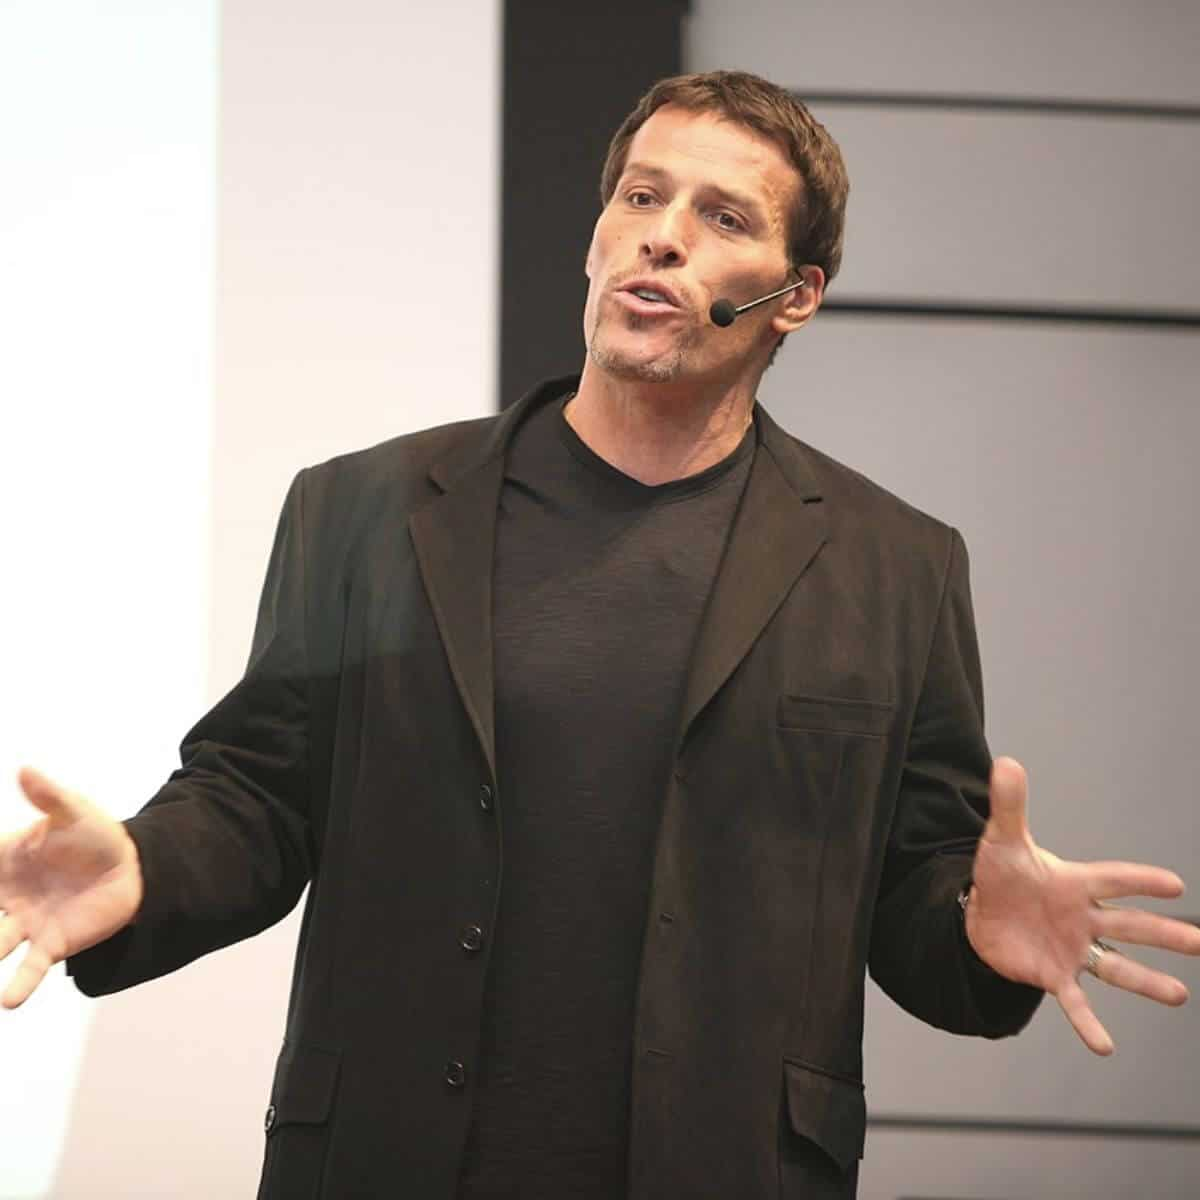 Tony Robbins giving a speech.